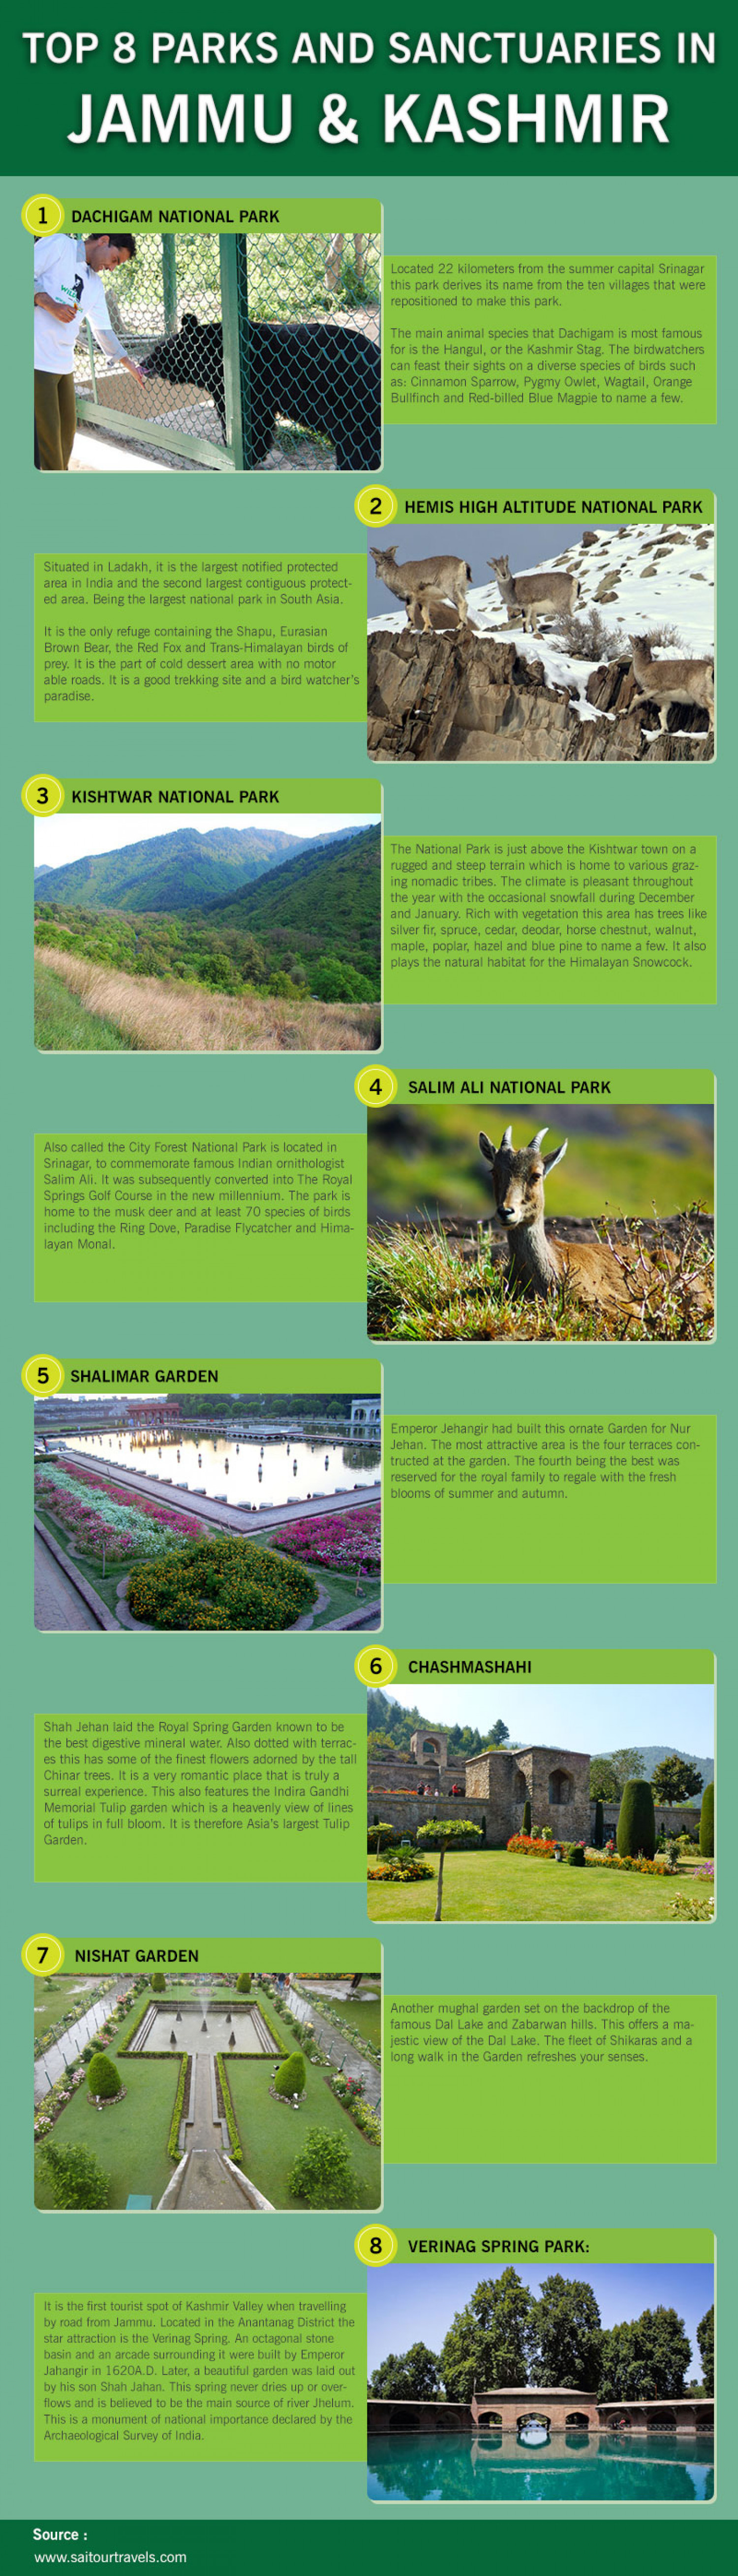 Top 8 Parks and Sanctuaries in Jammu & Kashmir  Infographic